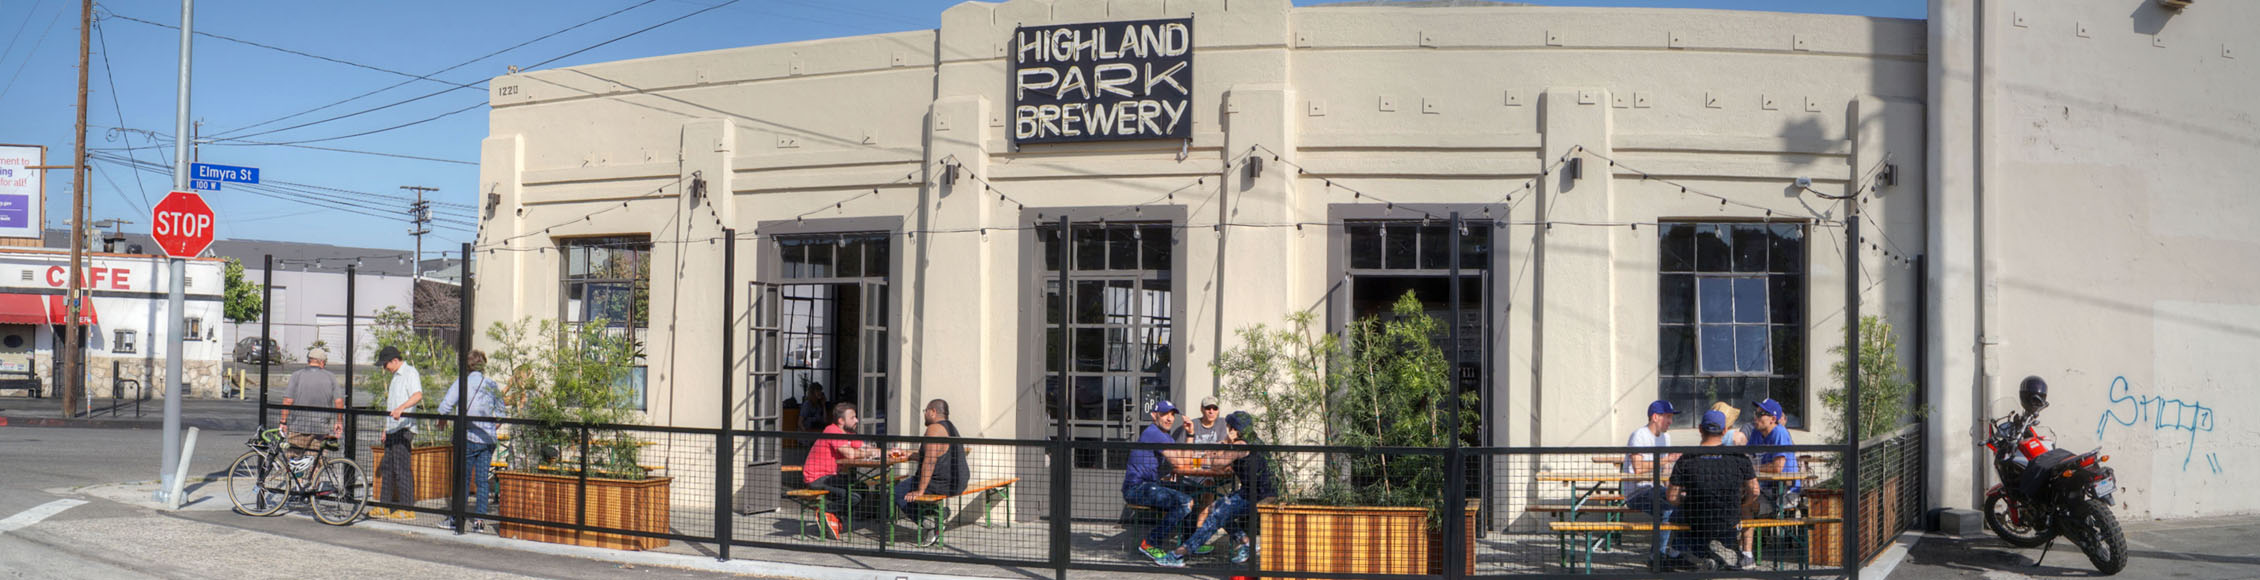 Highland Park Brewery - Chinatown Exterior